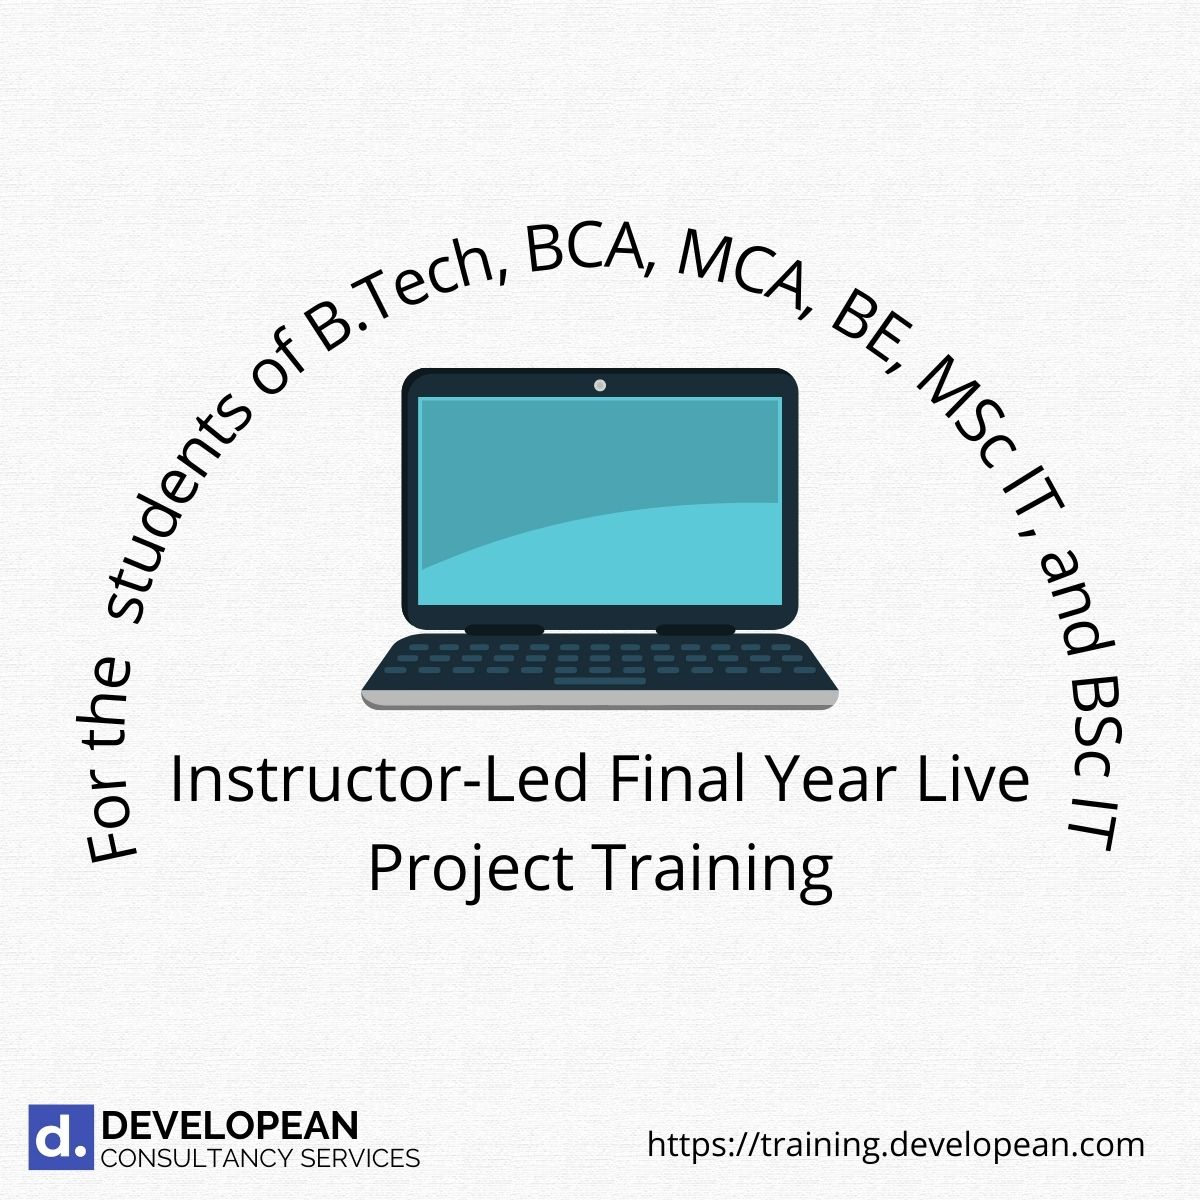 Instructor-Led Final Year Live Project Training